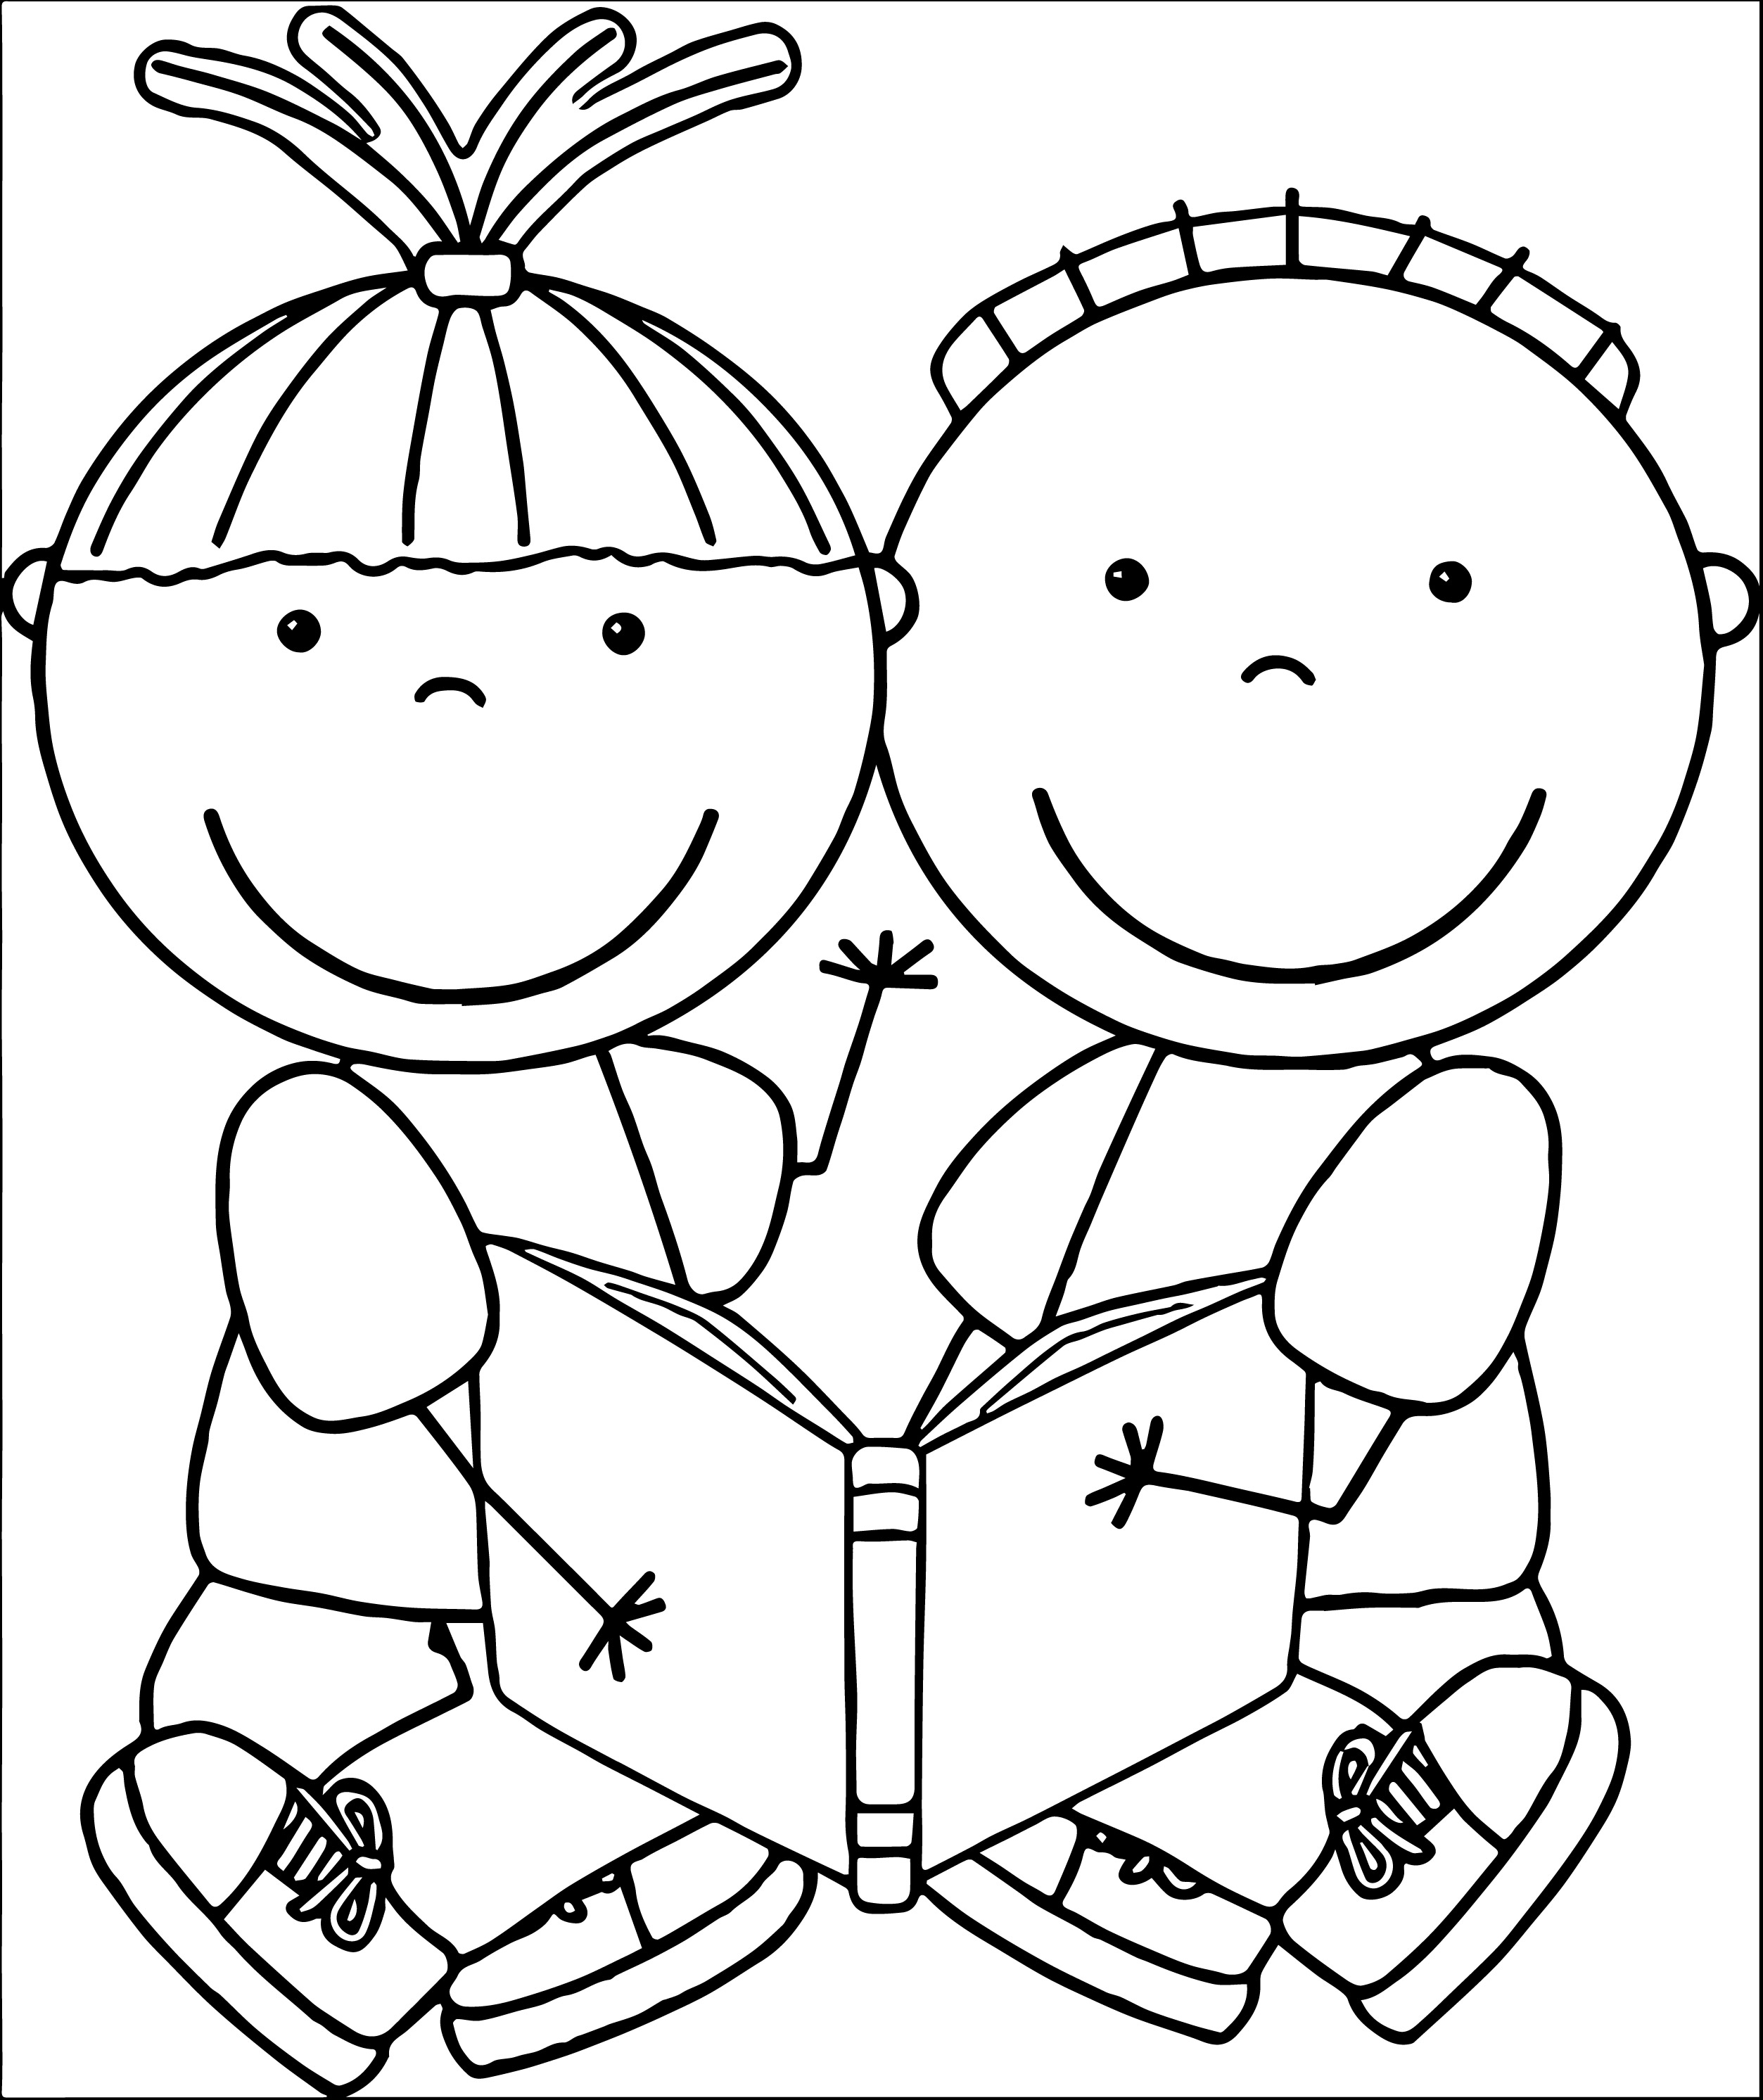 Clip Art Child Drawing At Getdrawings